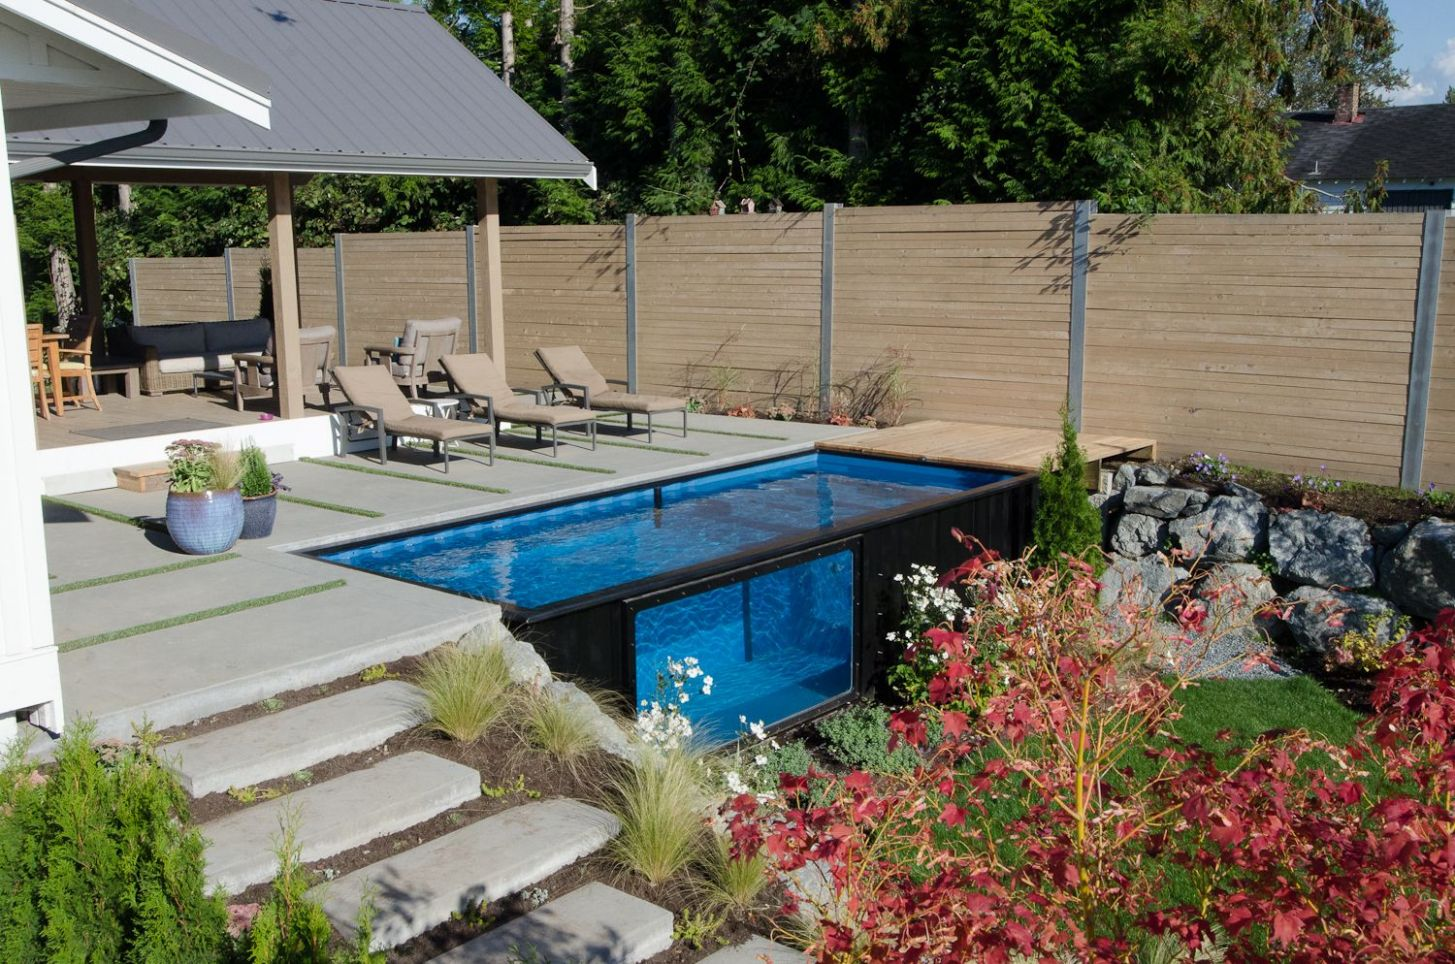 8 In-Ground Pool Designs - Best Swimming Pool Design Ideas for ..